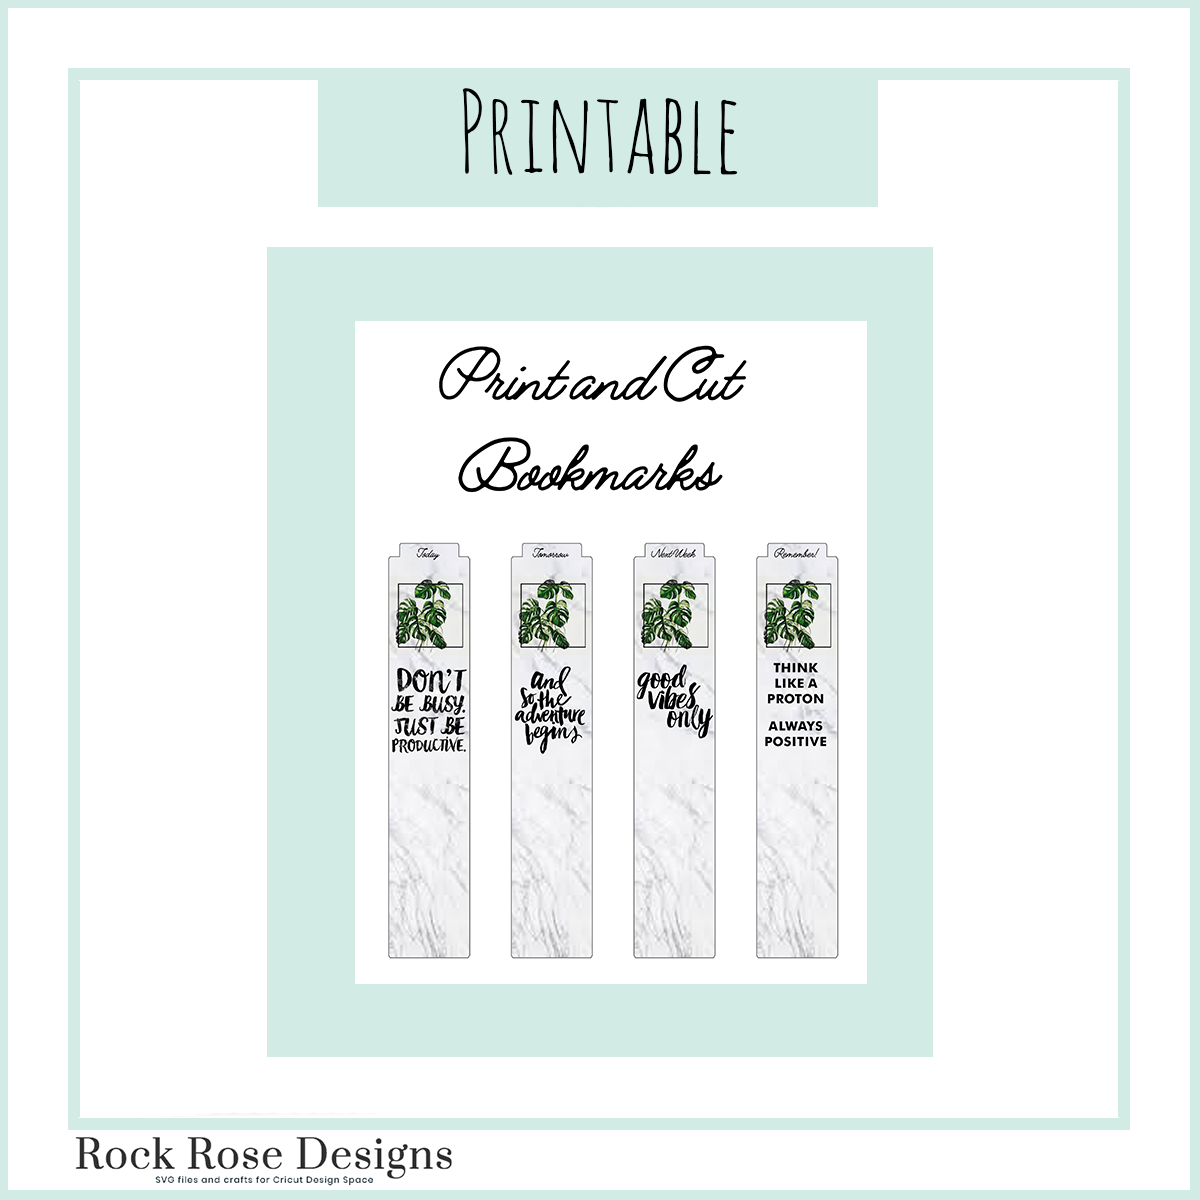 Easy Cut and Print Bookmarks!